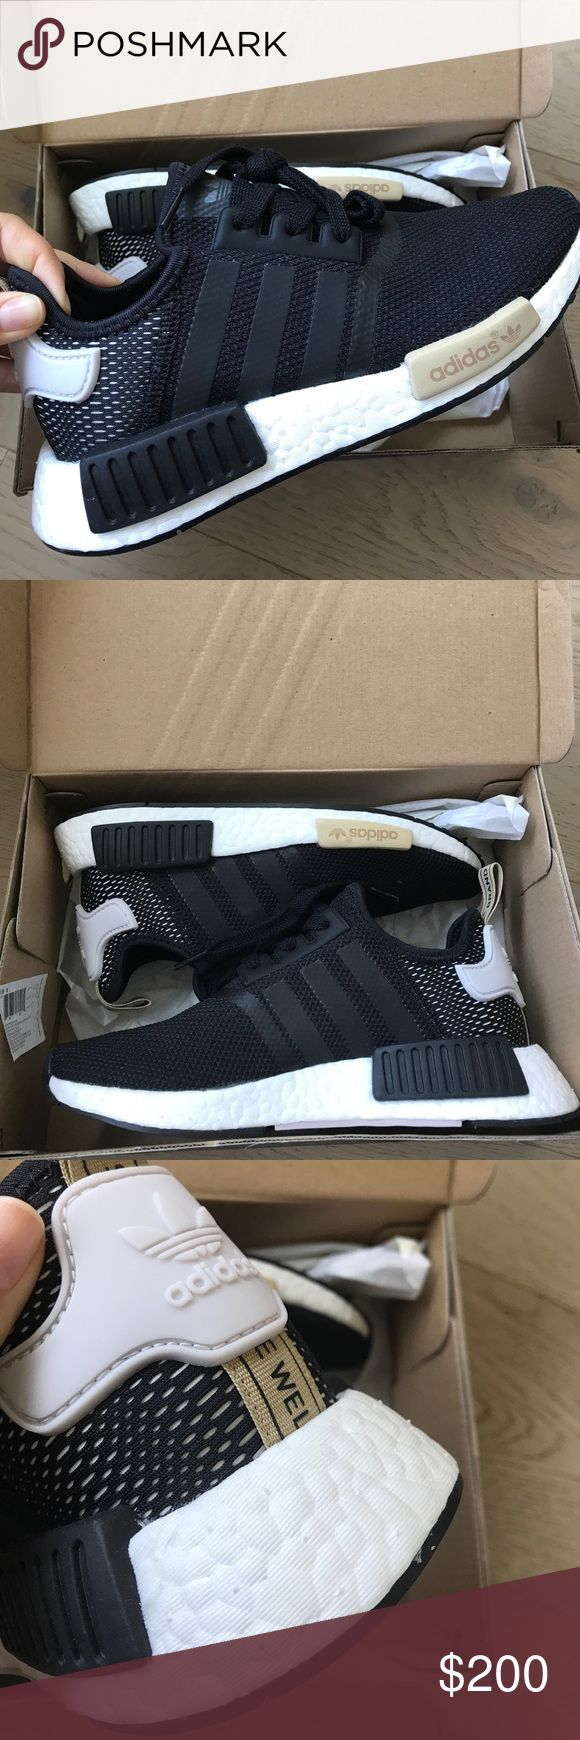 Adidas NMD R1 W black beige original 6 sneakers Adidas NMD R1 W brand new sneakers. Size US 6 in original box as well. 🙅🏻 PLEASE DO NOT ASK LOWEST PRICE 🙅🏻 ------------ Instead ---------------- ✅ USE OFFER BUTTON ✅ --------😐 no low balling please😐-------- 💁🏻 NO DRAMA HERE LETS BE NICE 🤗 🚫🚭 SMOKE FREE - PET FREE HOME 🚫🐾 👉 NO TRADES 👈 adidas Shoes Sneakers